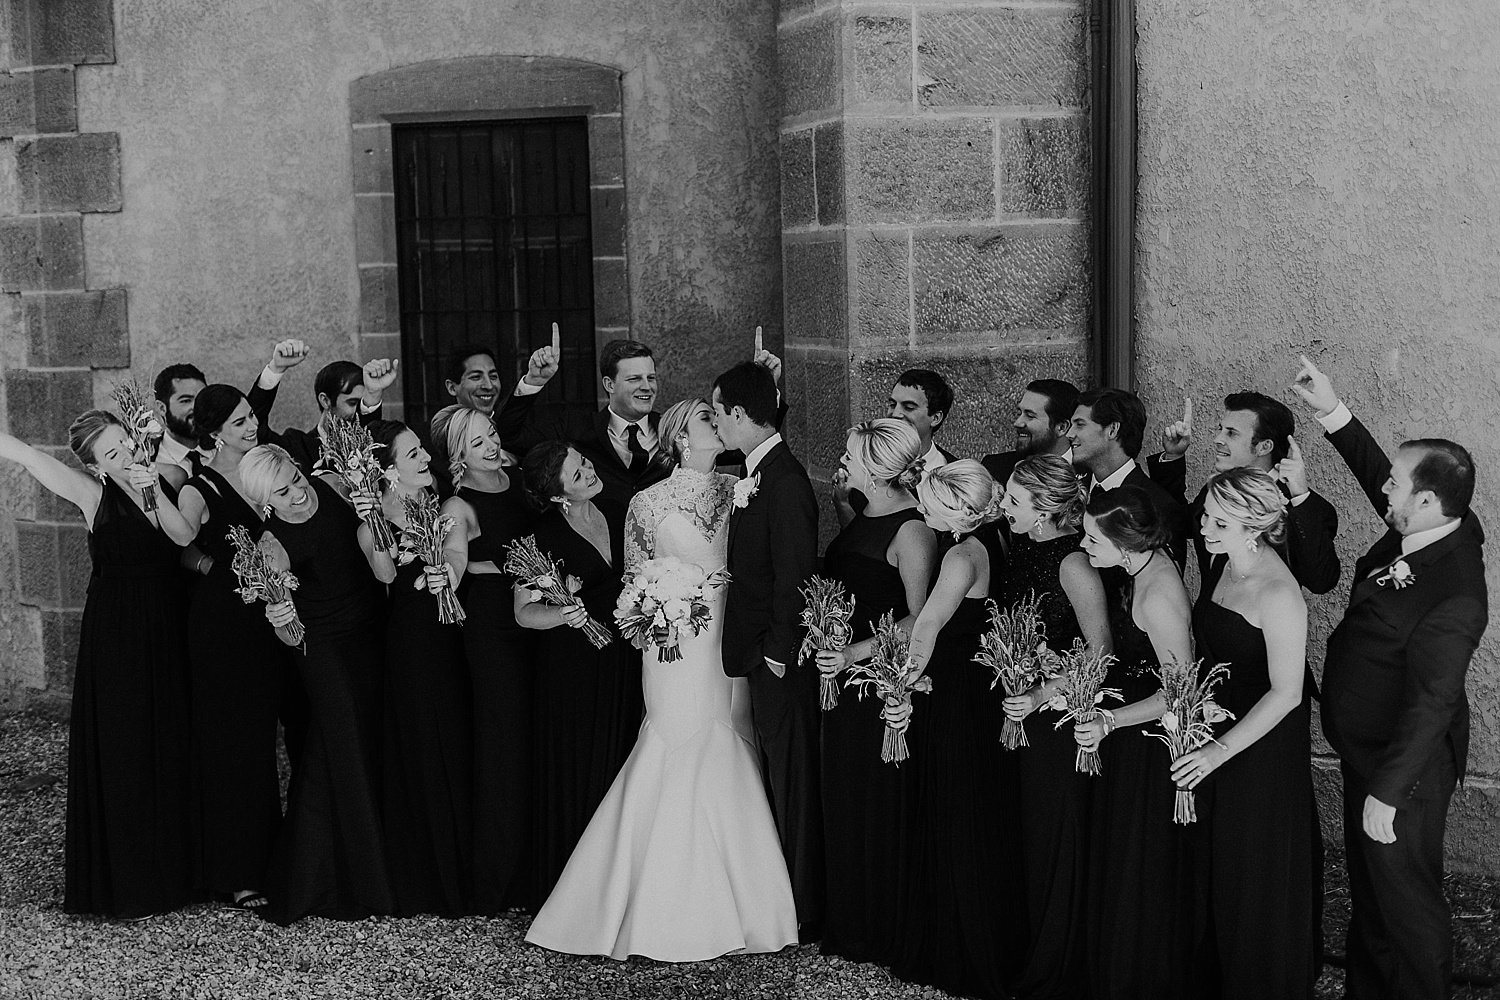 Alicia+lucia+photography+-+santa+fe+wedding+photographer+-+santa+fe+wedding+photography+-+new+mexico+wedding+photographer+-+new+mexico+inn+at+loretto+wedding_0034.jpg